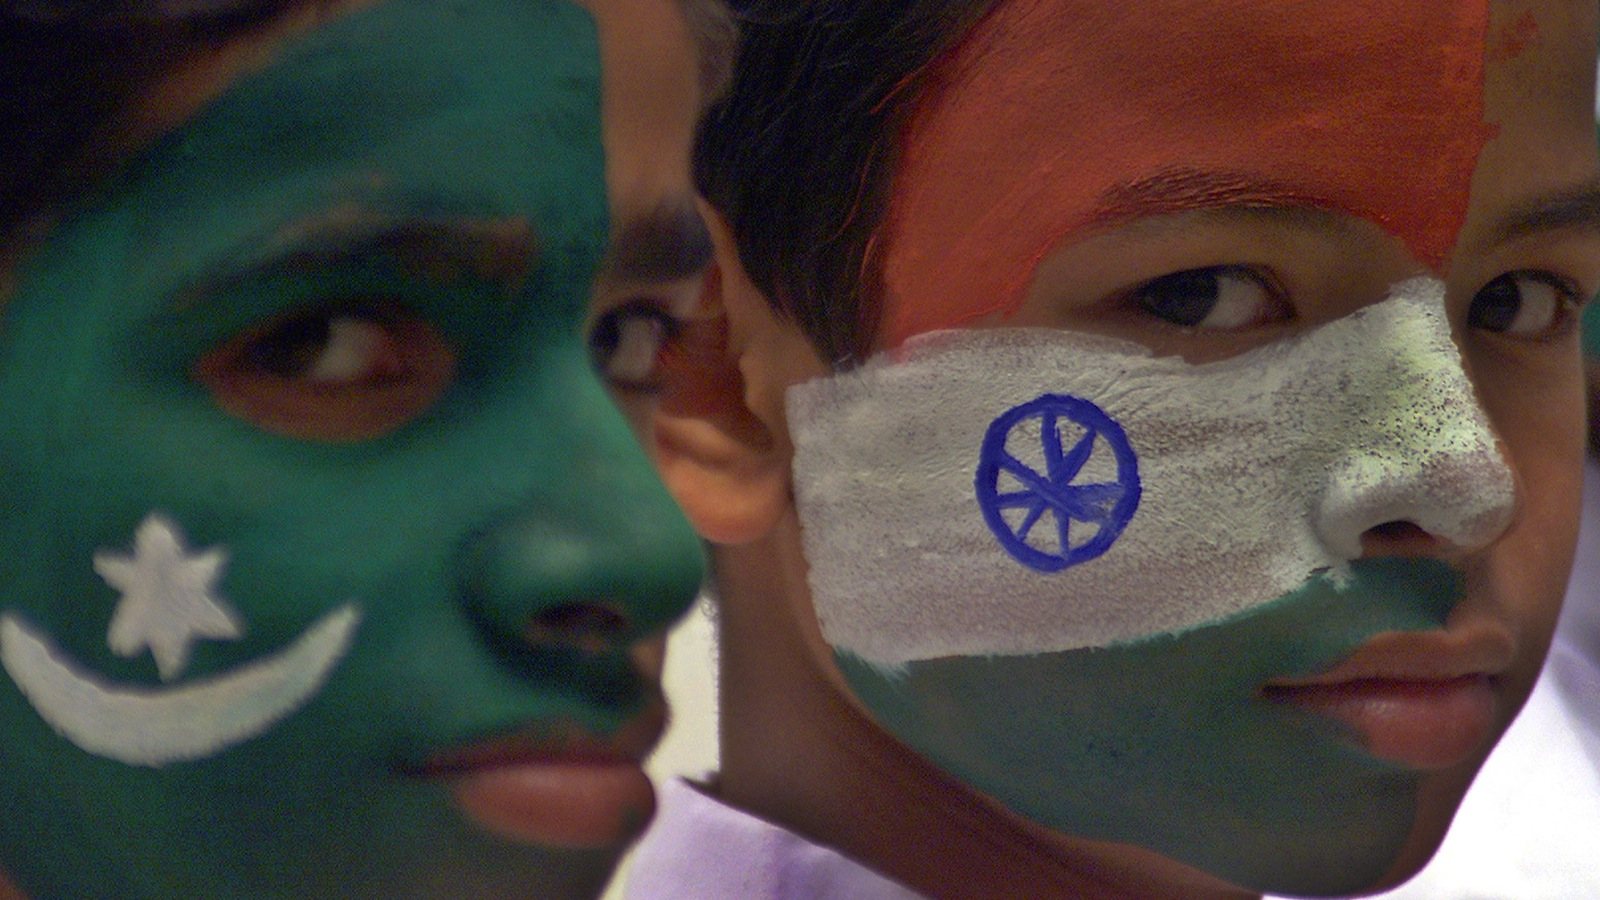 Indian students pose with India and Pakistan national flags painted on their faces in the northern Indian city of Lucknow March 7, 2005. The Pakistan team is in India on a tour to play three tests and six one-day internationals. REUTERS/Pawan Kumar VM/SD/